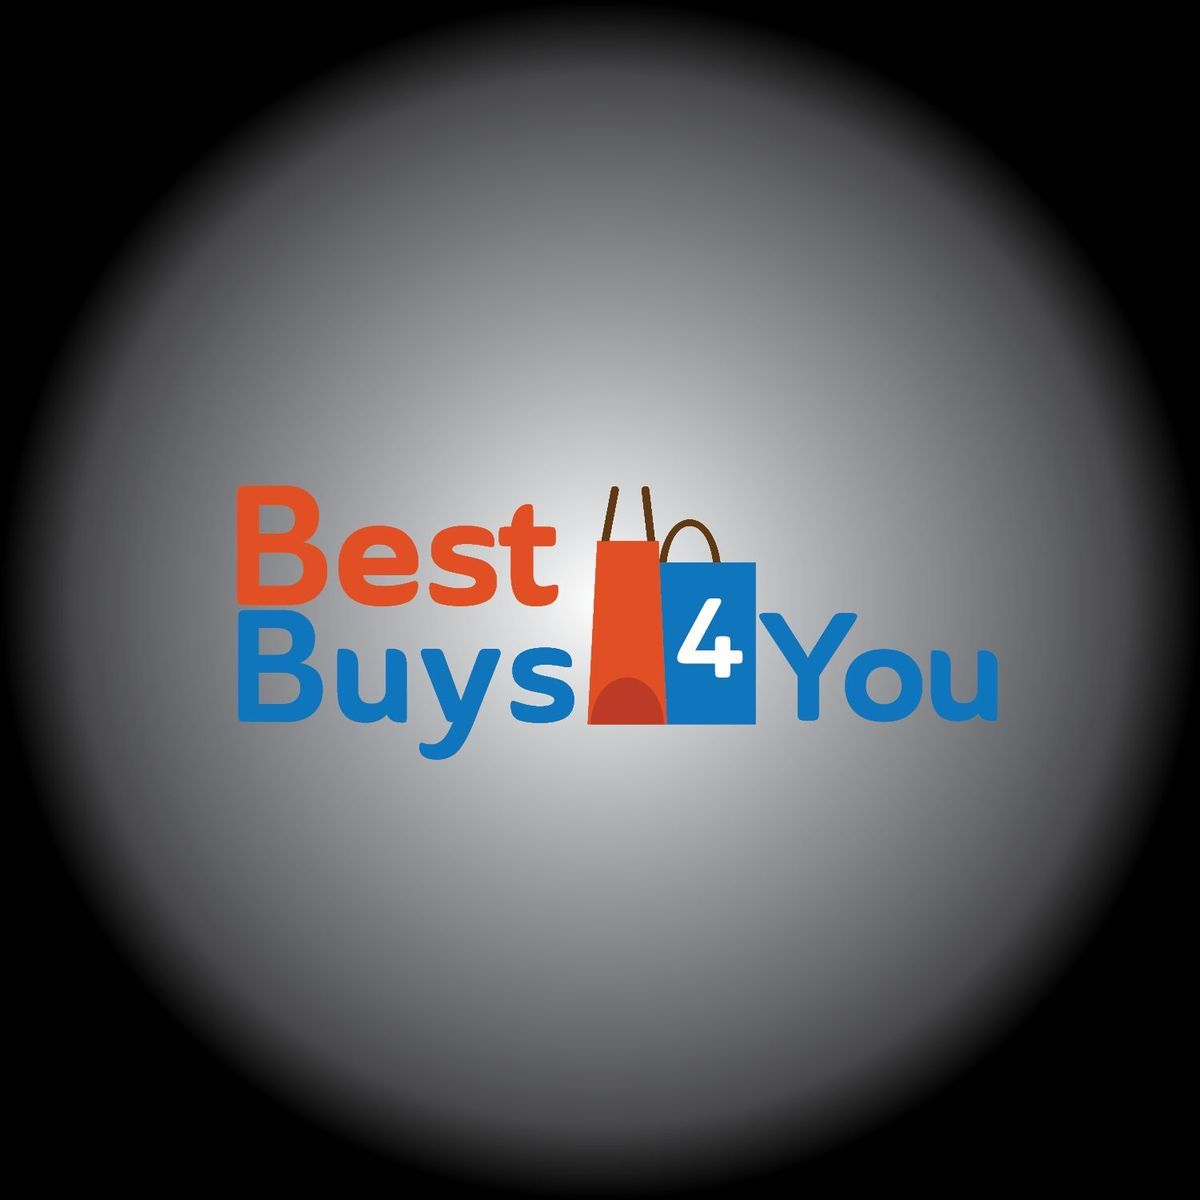 Bestbuys4you15 Cool Things To Buy Neon Signs Ebay